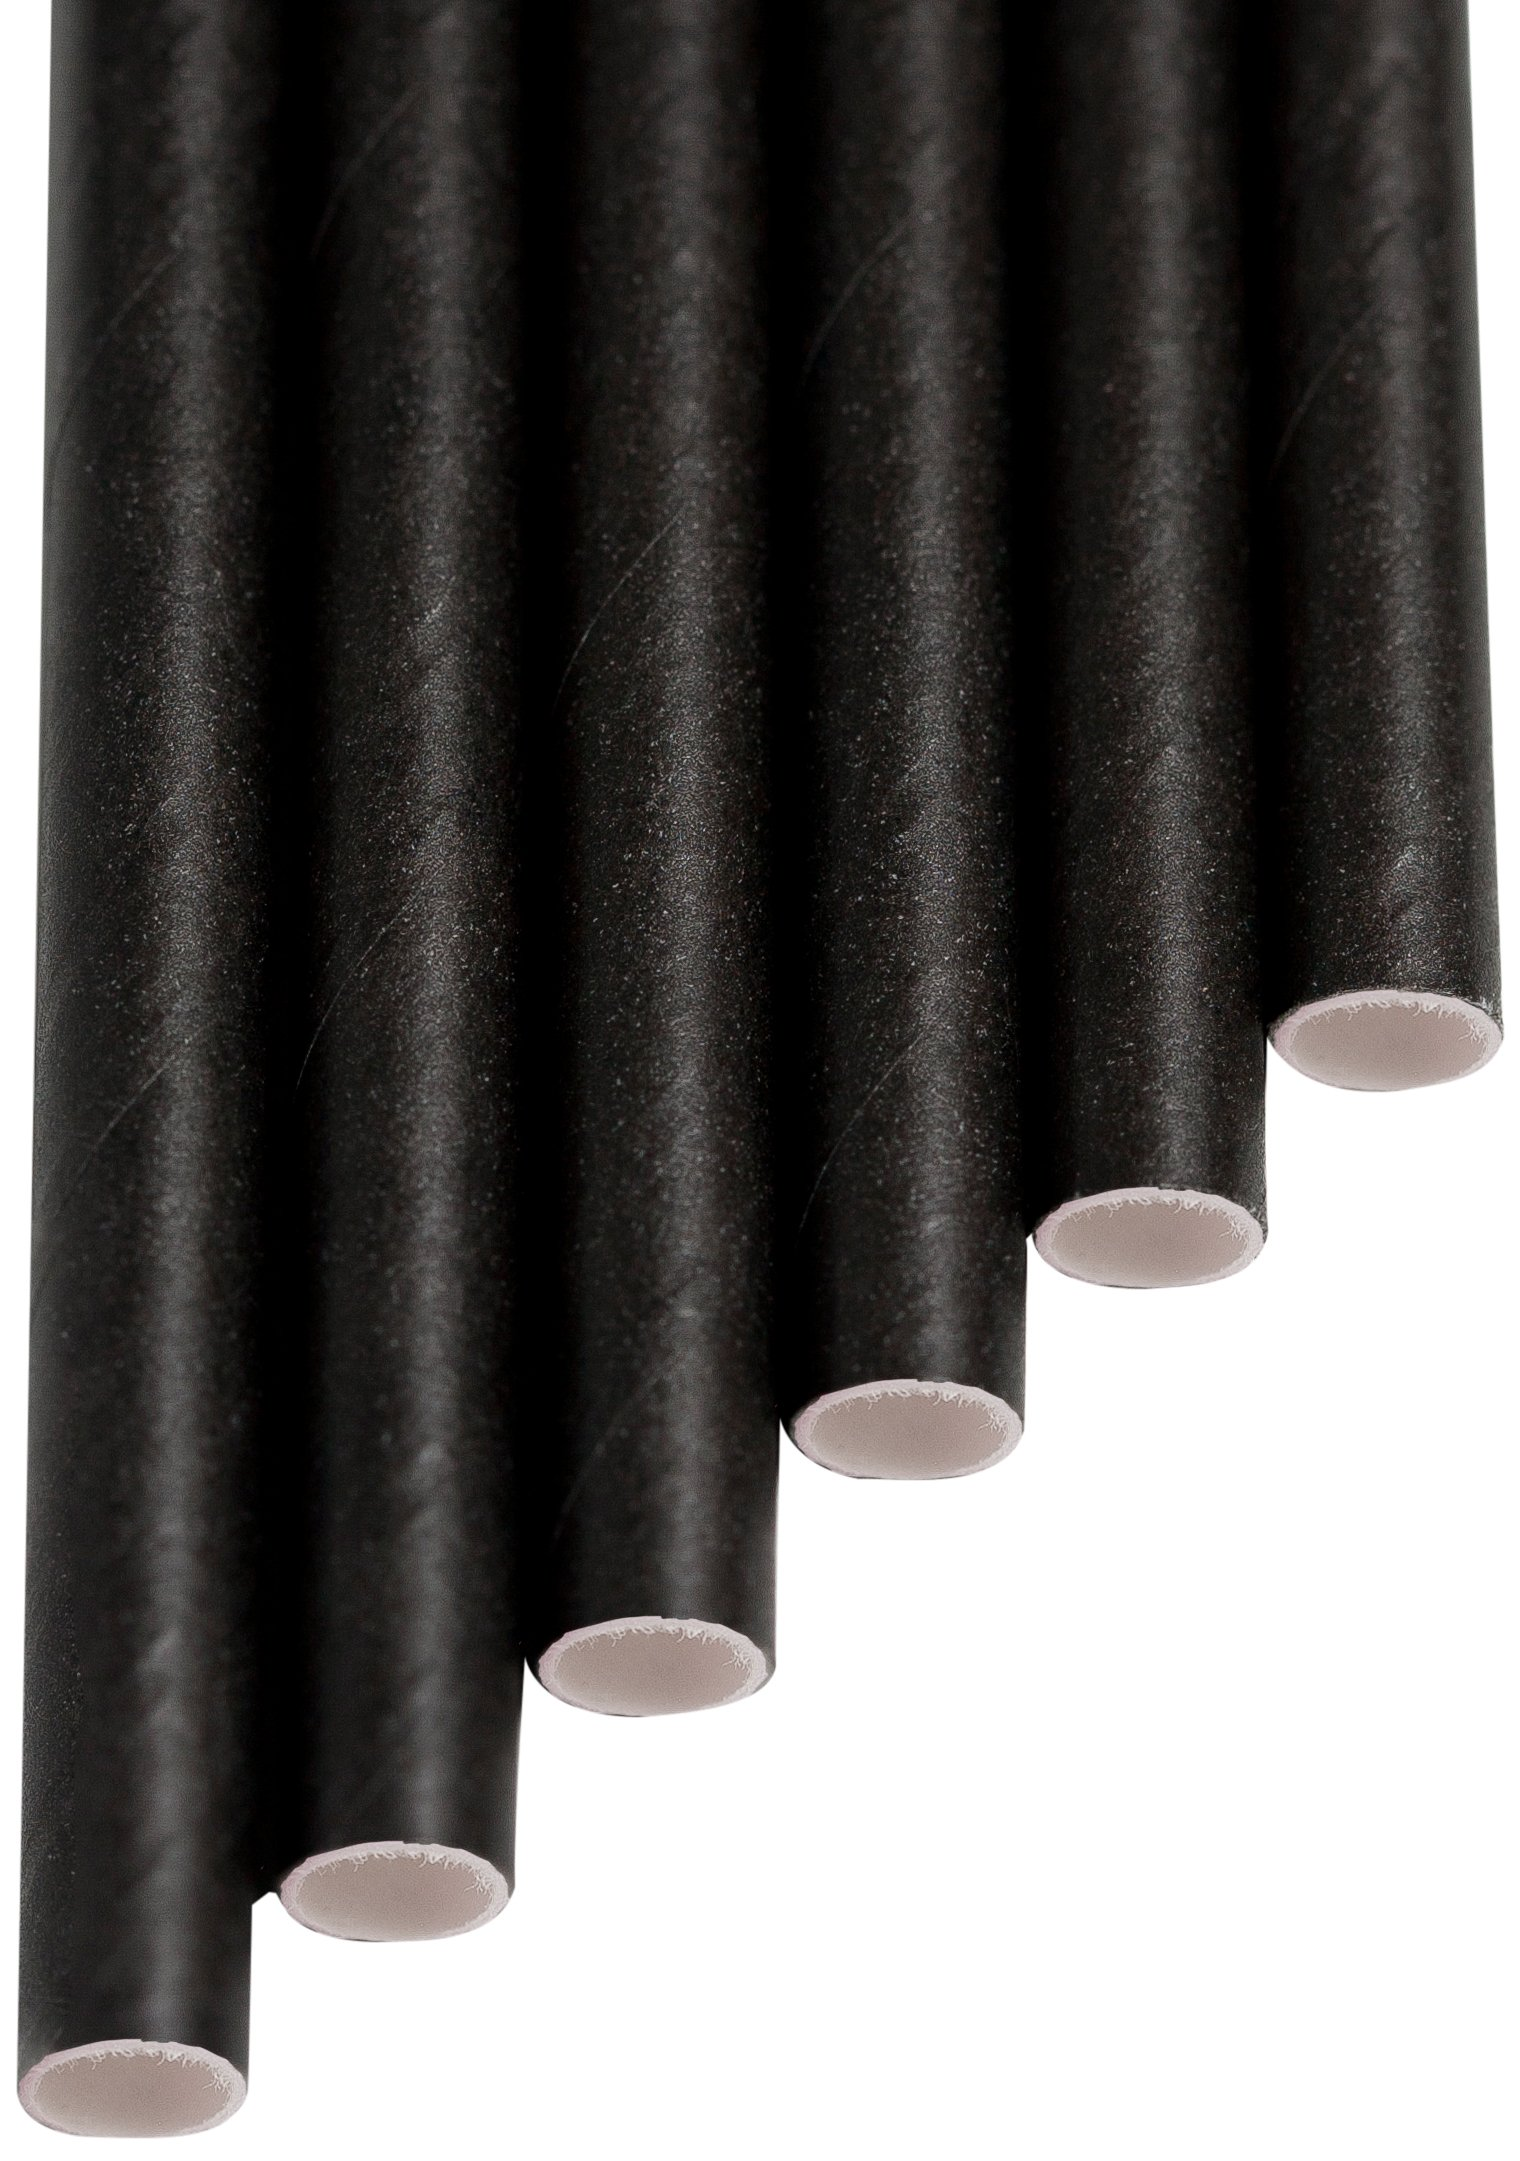 Aardvark Straws 61520099 Paper Drinking Straw, Unwrapped and Jumbo, 7.750'' Long, Solid Jet Black (Pack of 4800) by Aardvark Straws